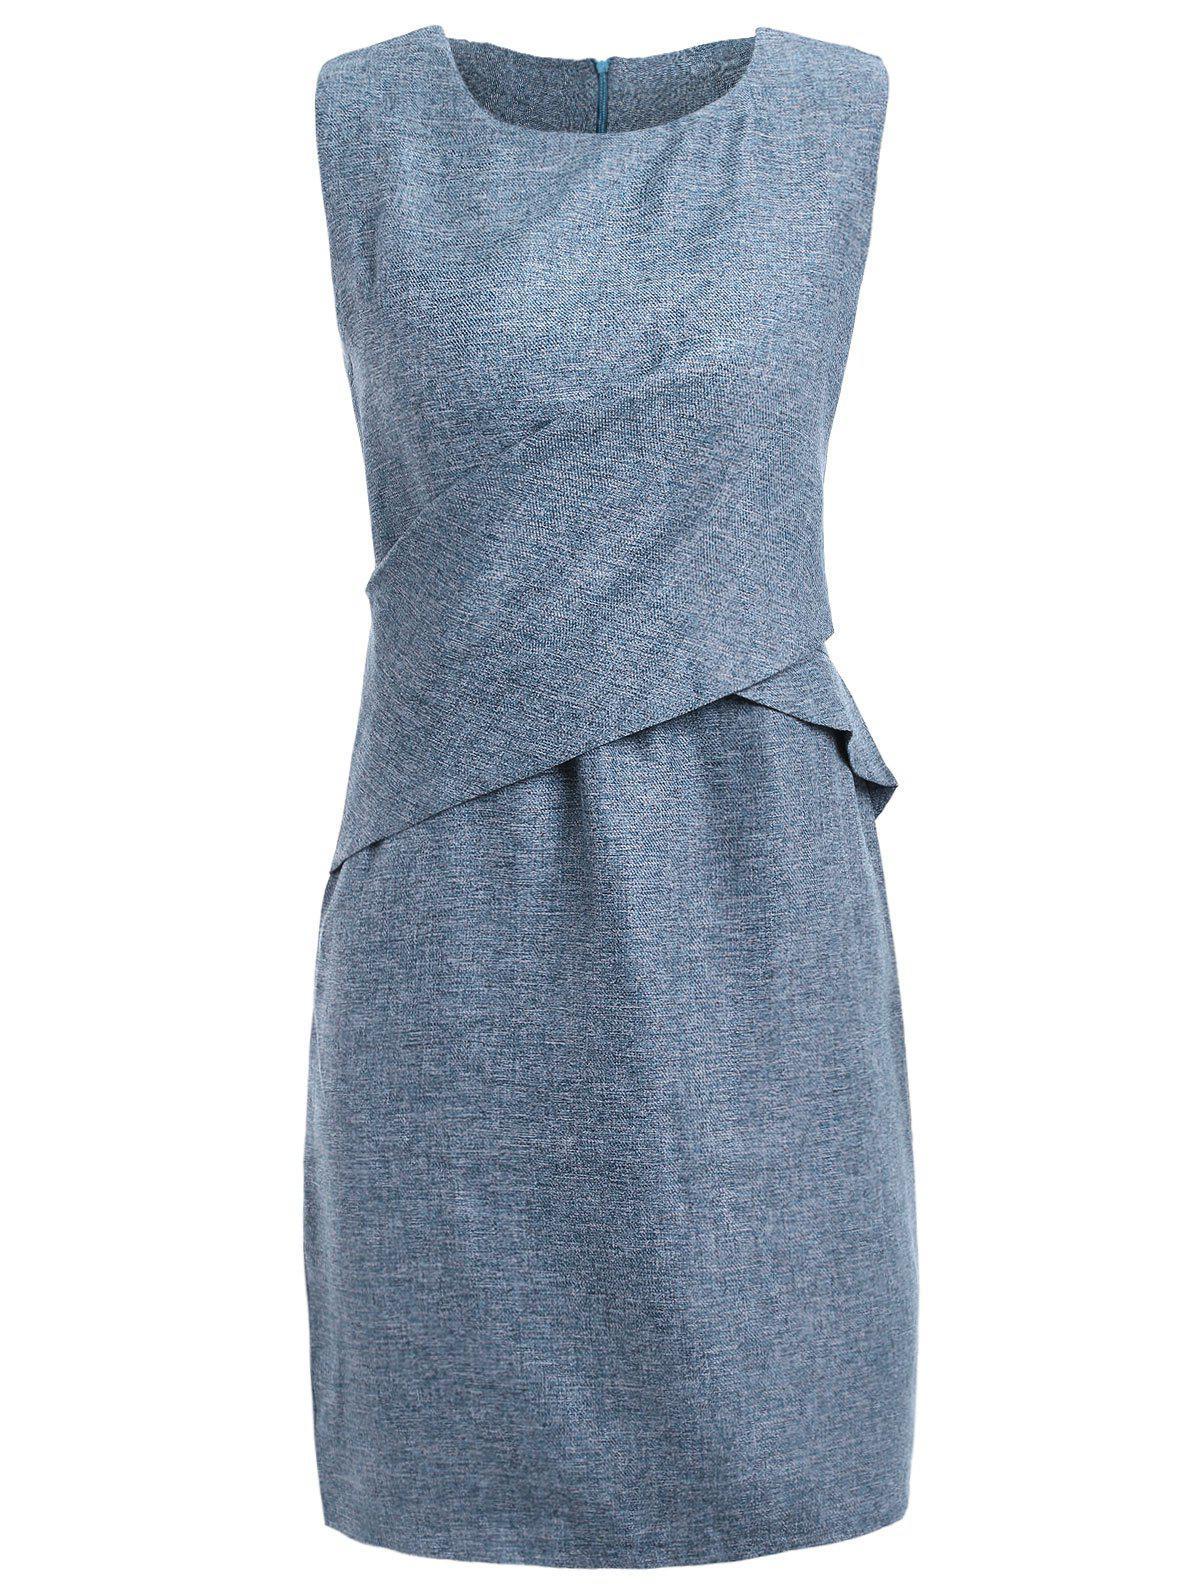 Fashionable Simple Scoop Neck Sleeveless Slim Waist Mid-Calf Dress For WomenWomen<br><br><br>Size: ONE SIZE(FIT SIZE XS TO M)<br>Color: ICE BLUE